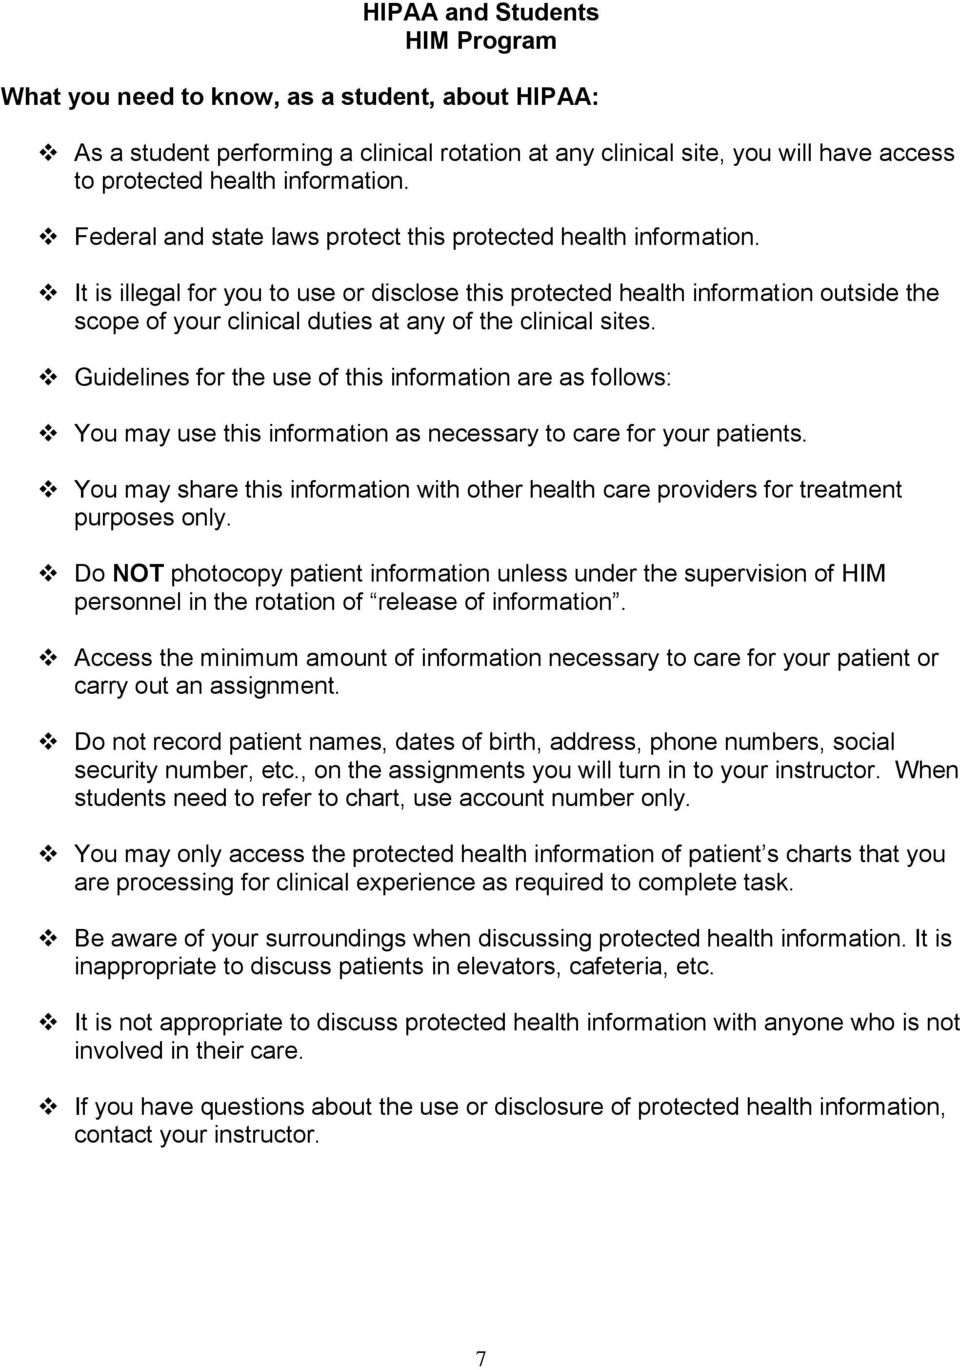 It is illegal for you to use or disclose this protected health information outside the scope of your clinical duties at any of the clinical sites.